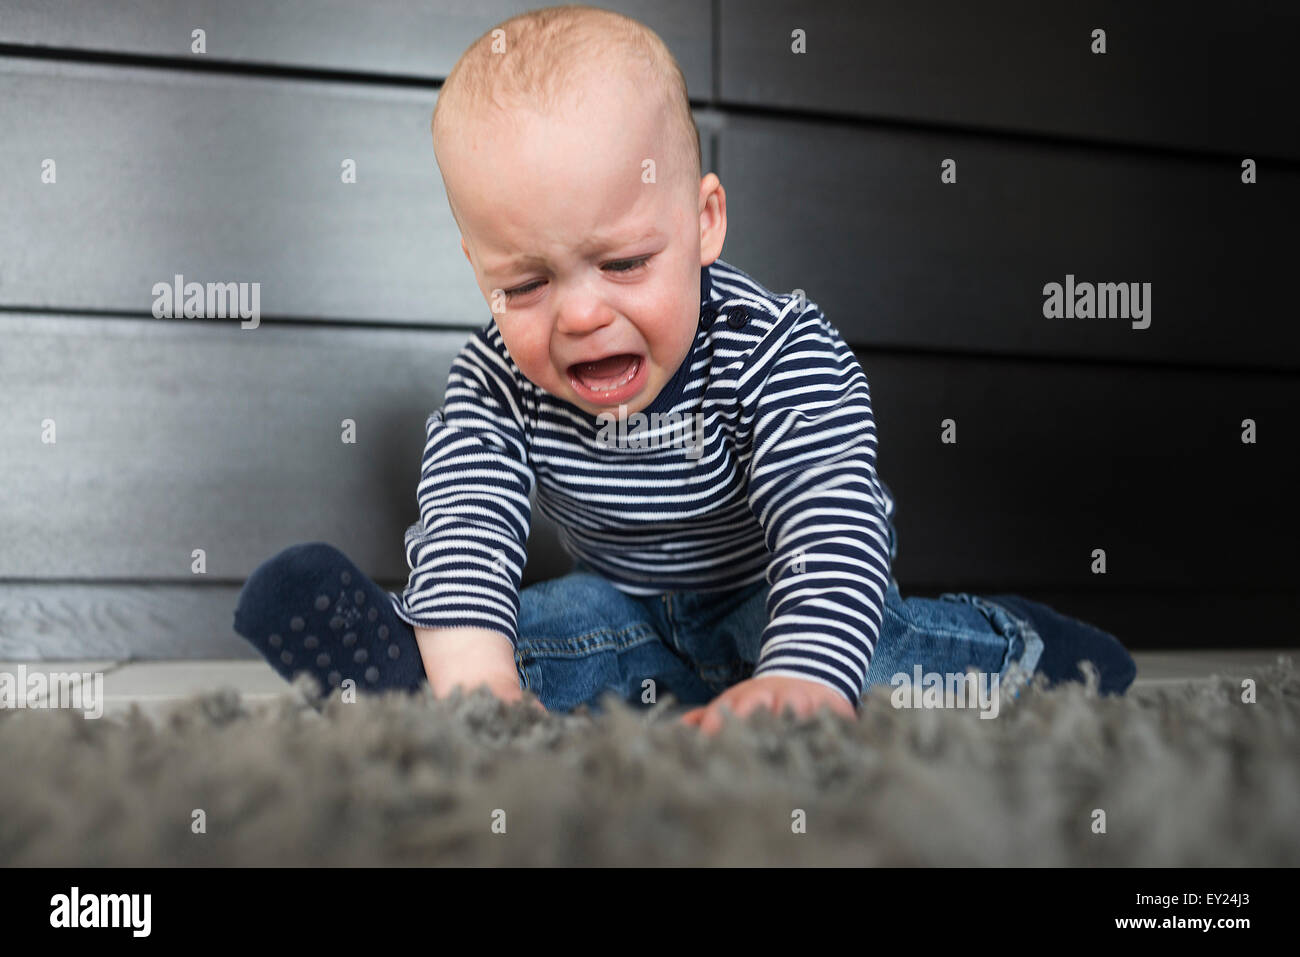 crying toddler on floor stockfotos crying toddler on. Black Bedroom Furniture Sets. Home Design Ideas